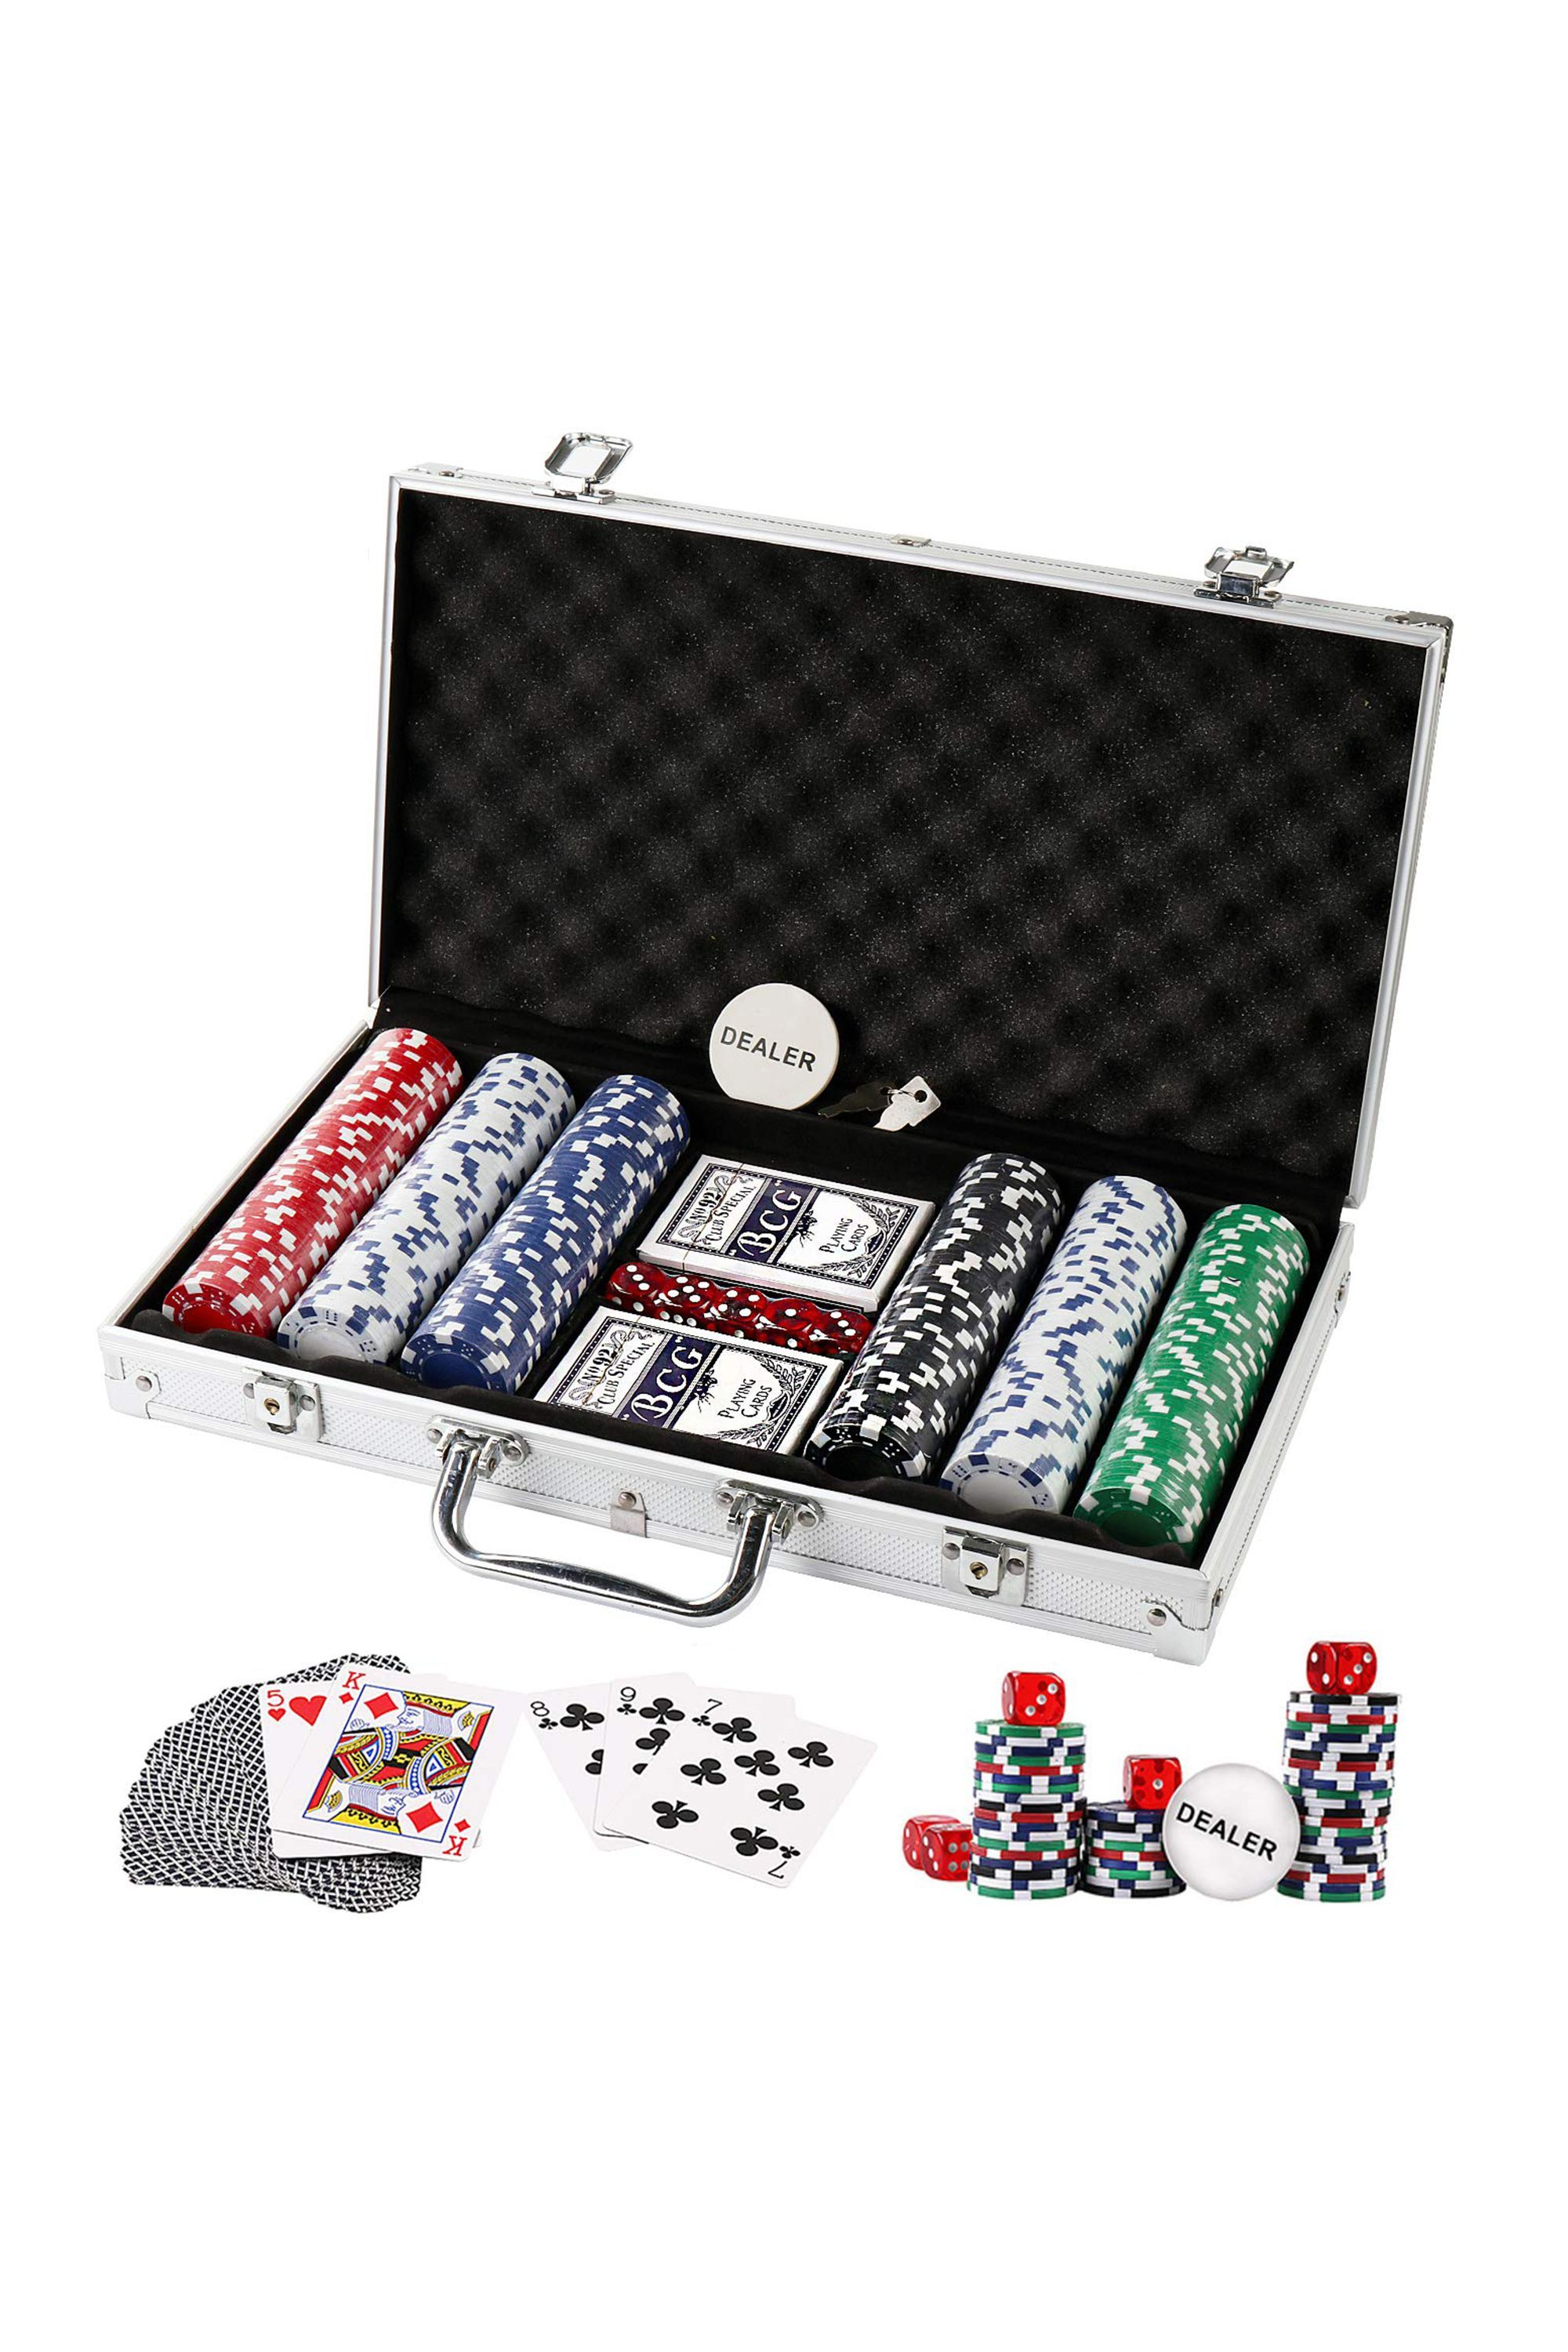 Poker Chips Set Doublefan amazon.com $39.99 SHOP NOW This 300-piece set means you can practice together. Maybe you'll actually beat him one day.